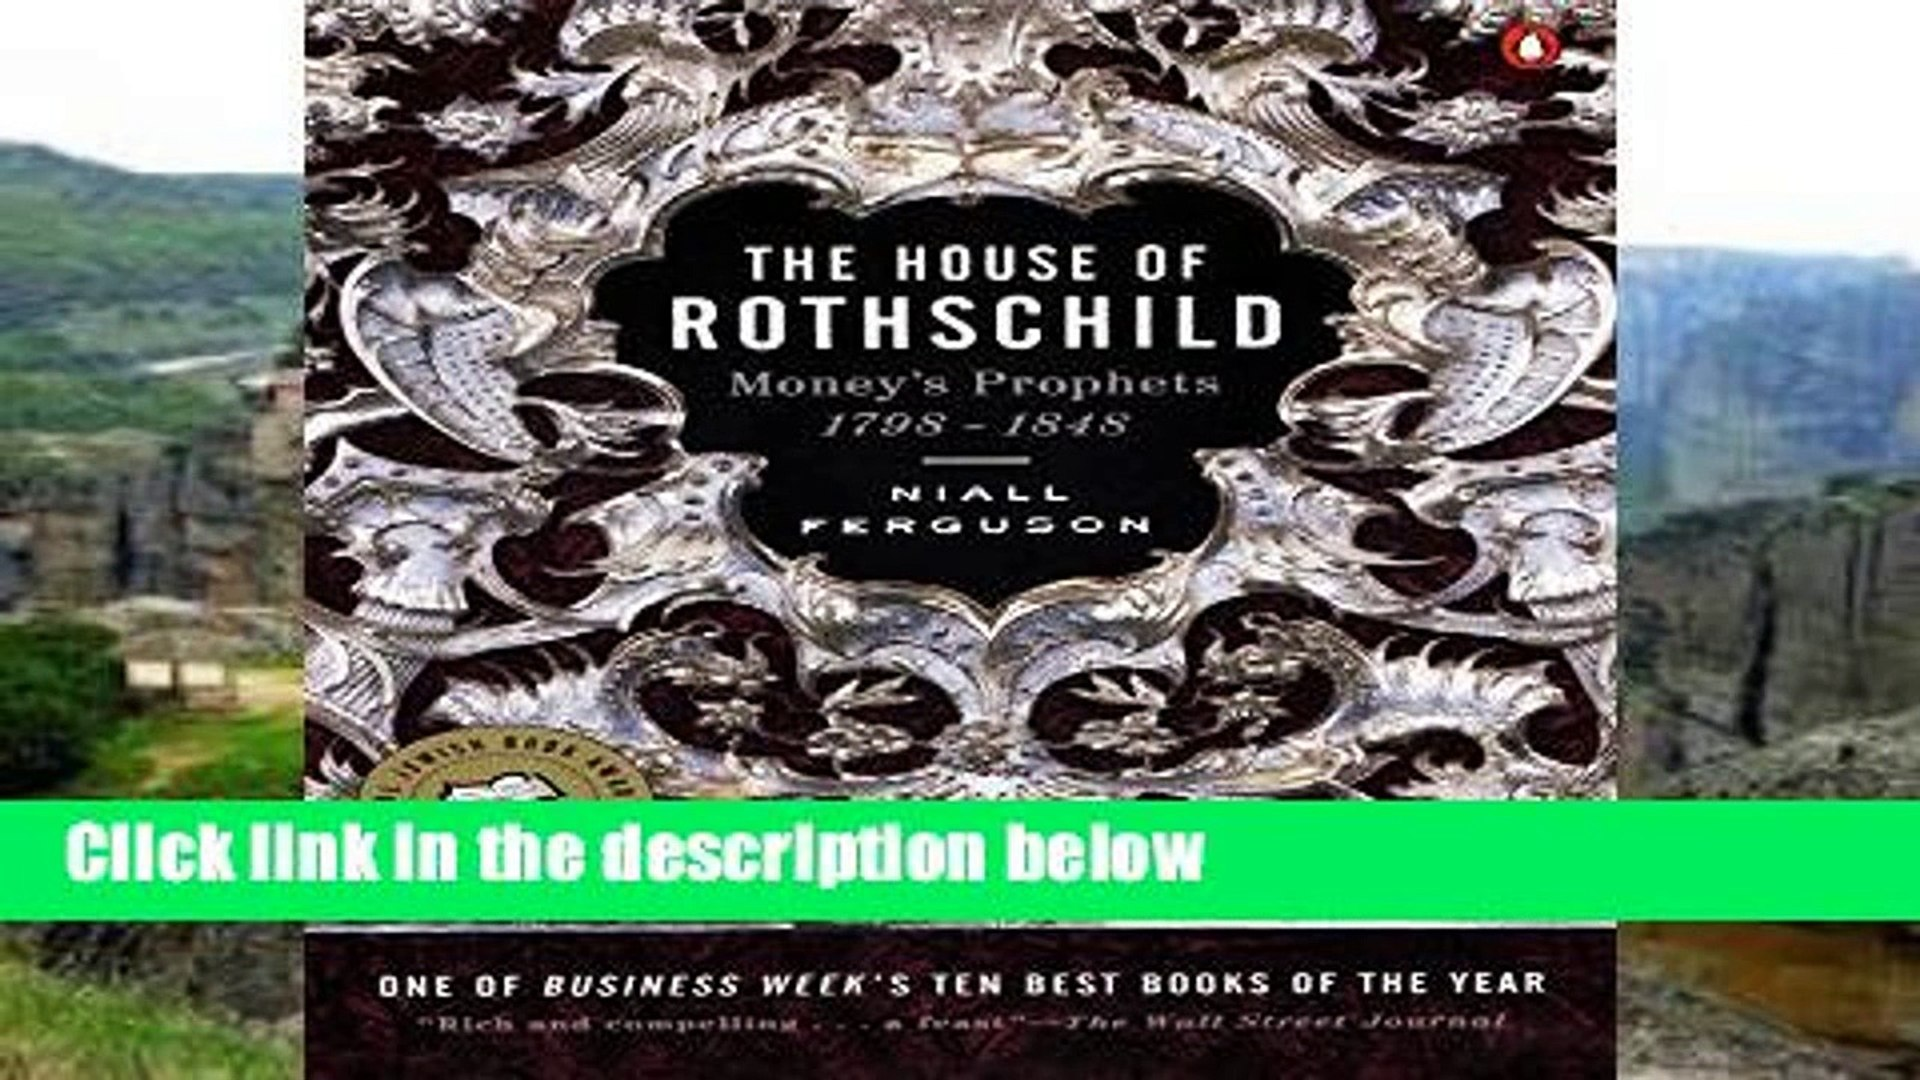 About For Books  The House of Rothschild: Money s Prophets 1798-1848  Review